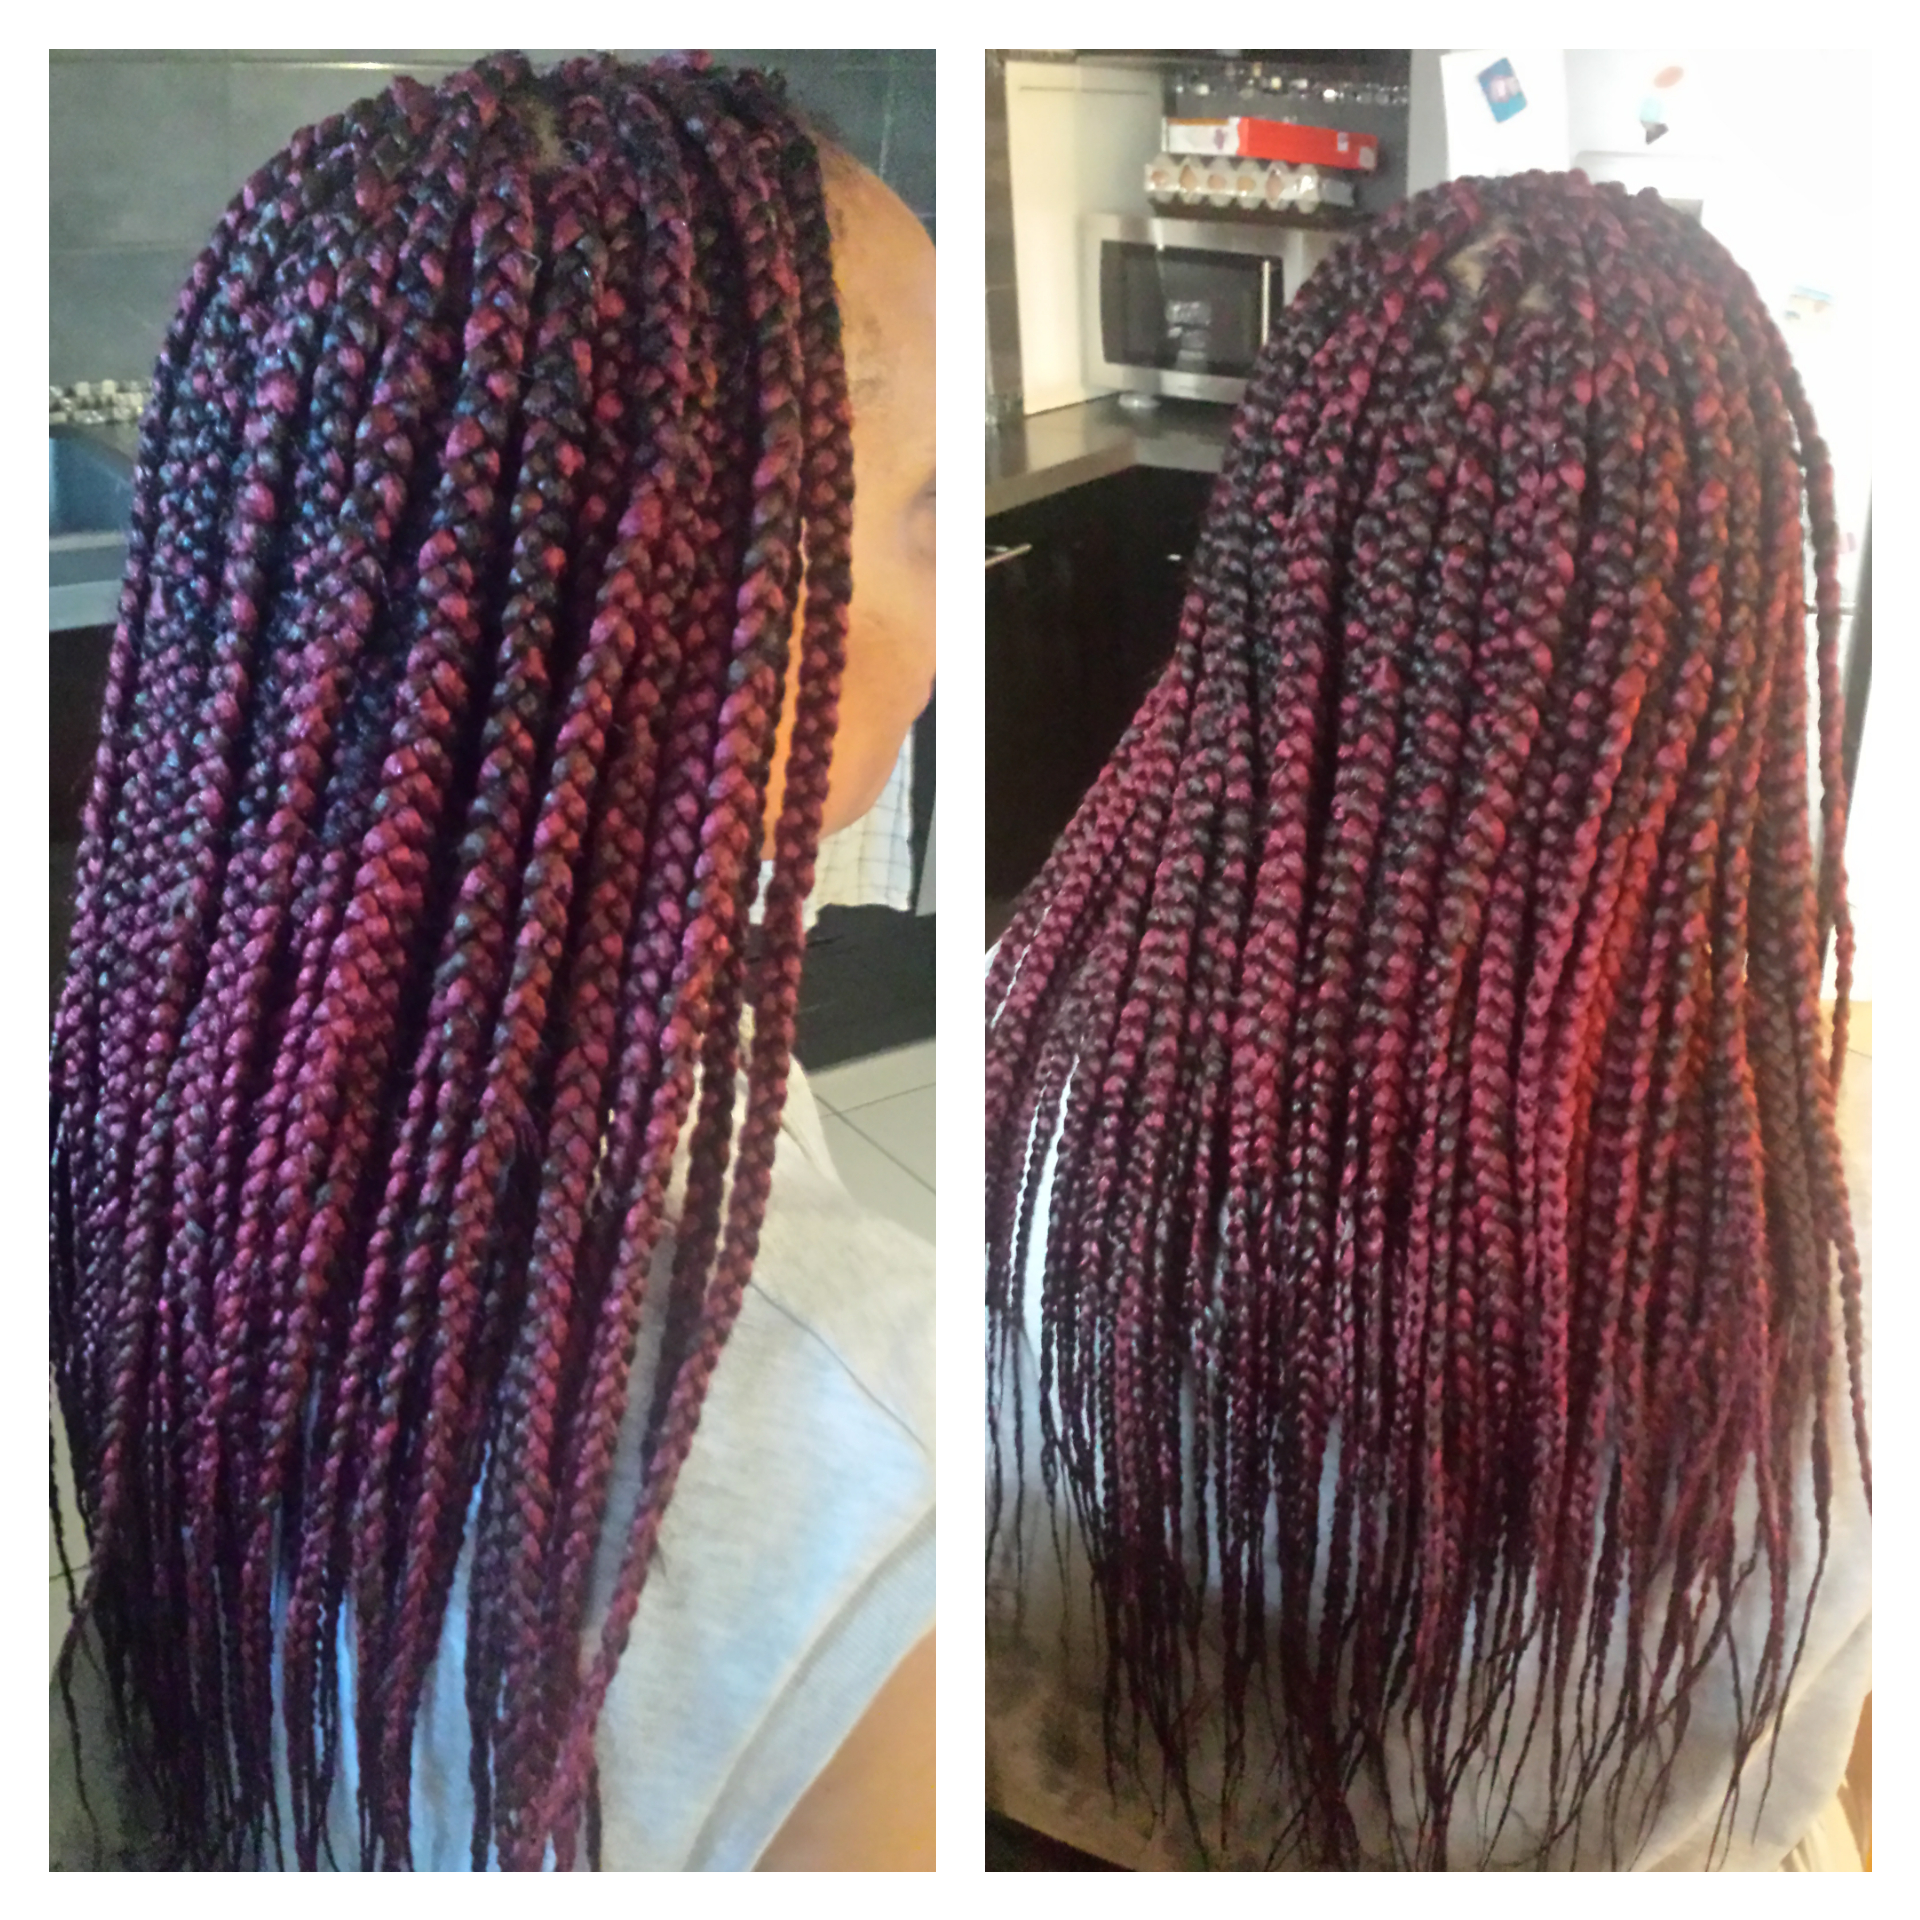 salon de coiffure afro tresse tresses box braids crochet braids vanilles tissages paris 75 77 78 91 92 93 94 95 XTGCPKPM